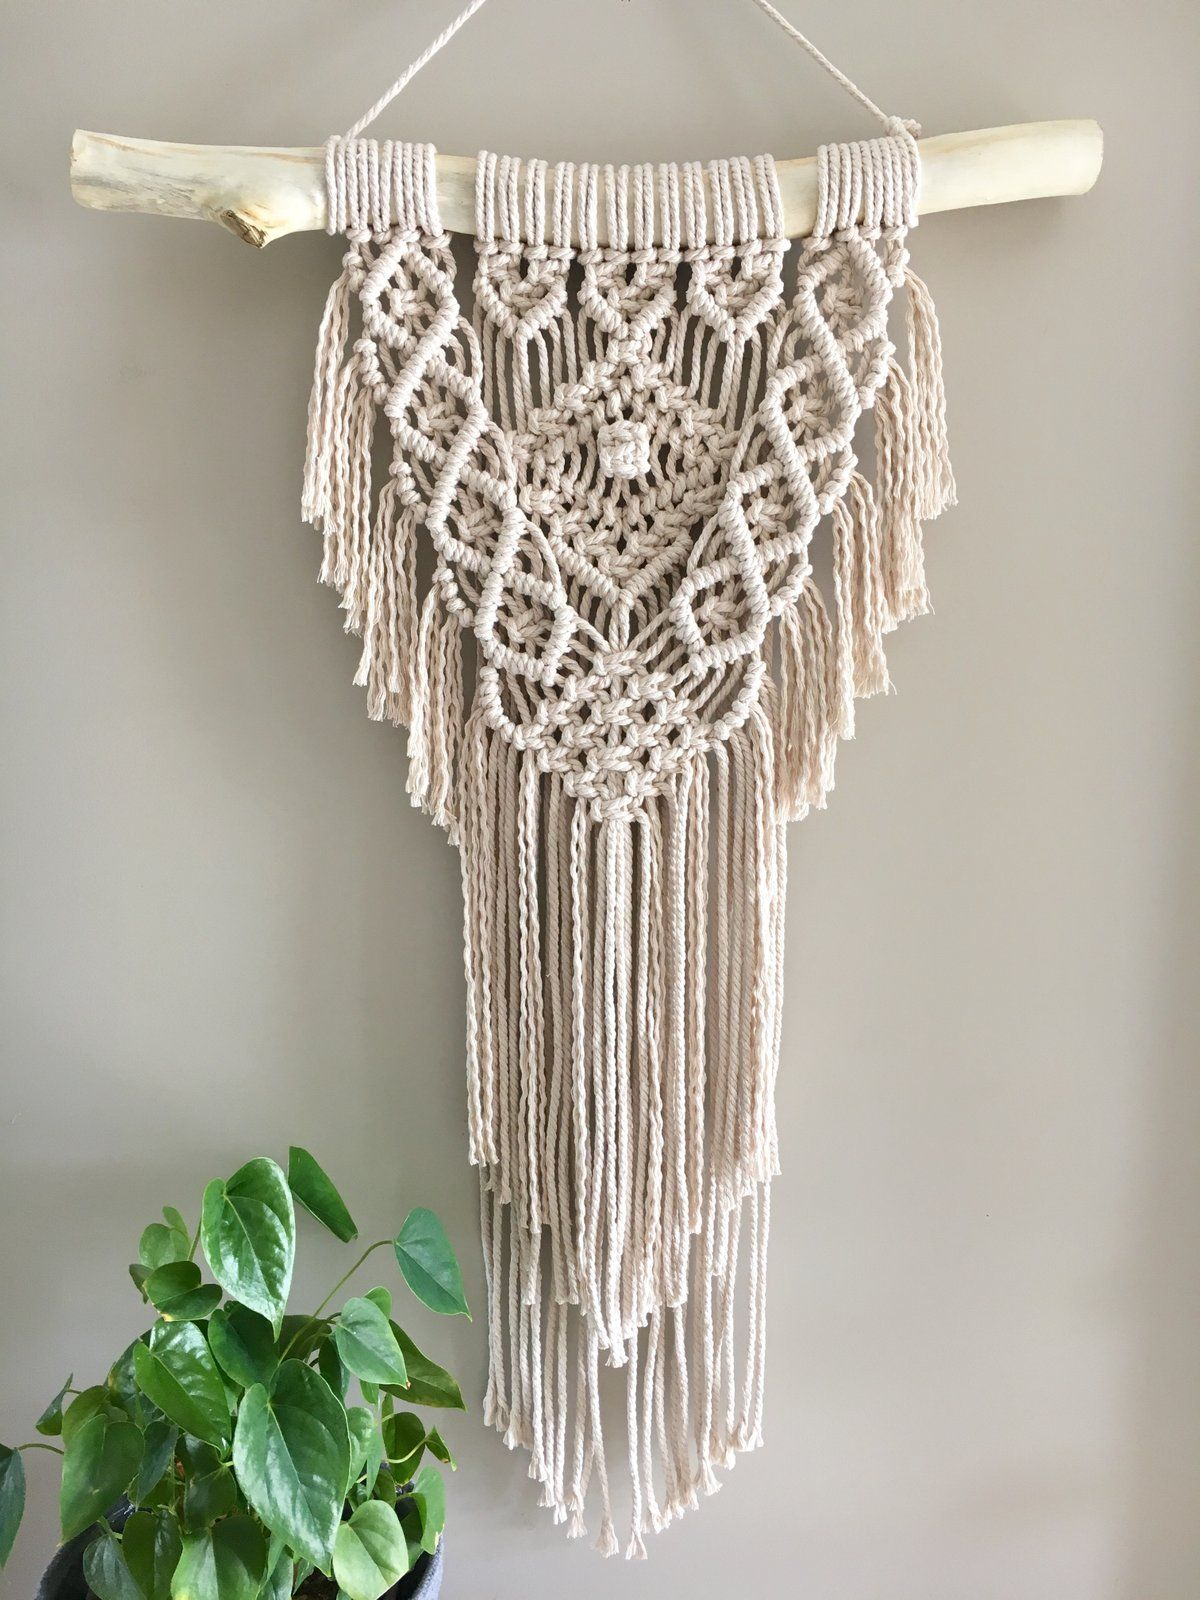 Cleo Möbel Image Of Cleo Macrame Wall Hanging On Tas Oak Dowel Mto